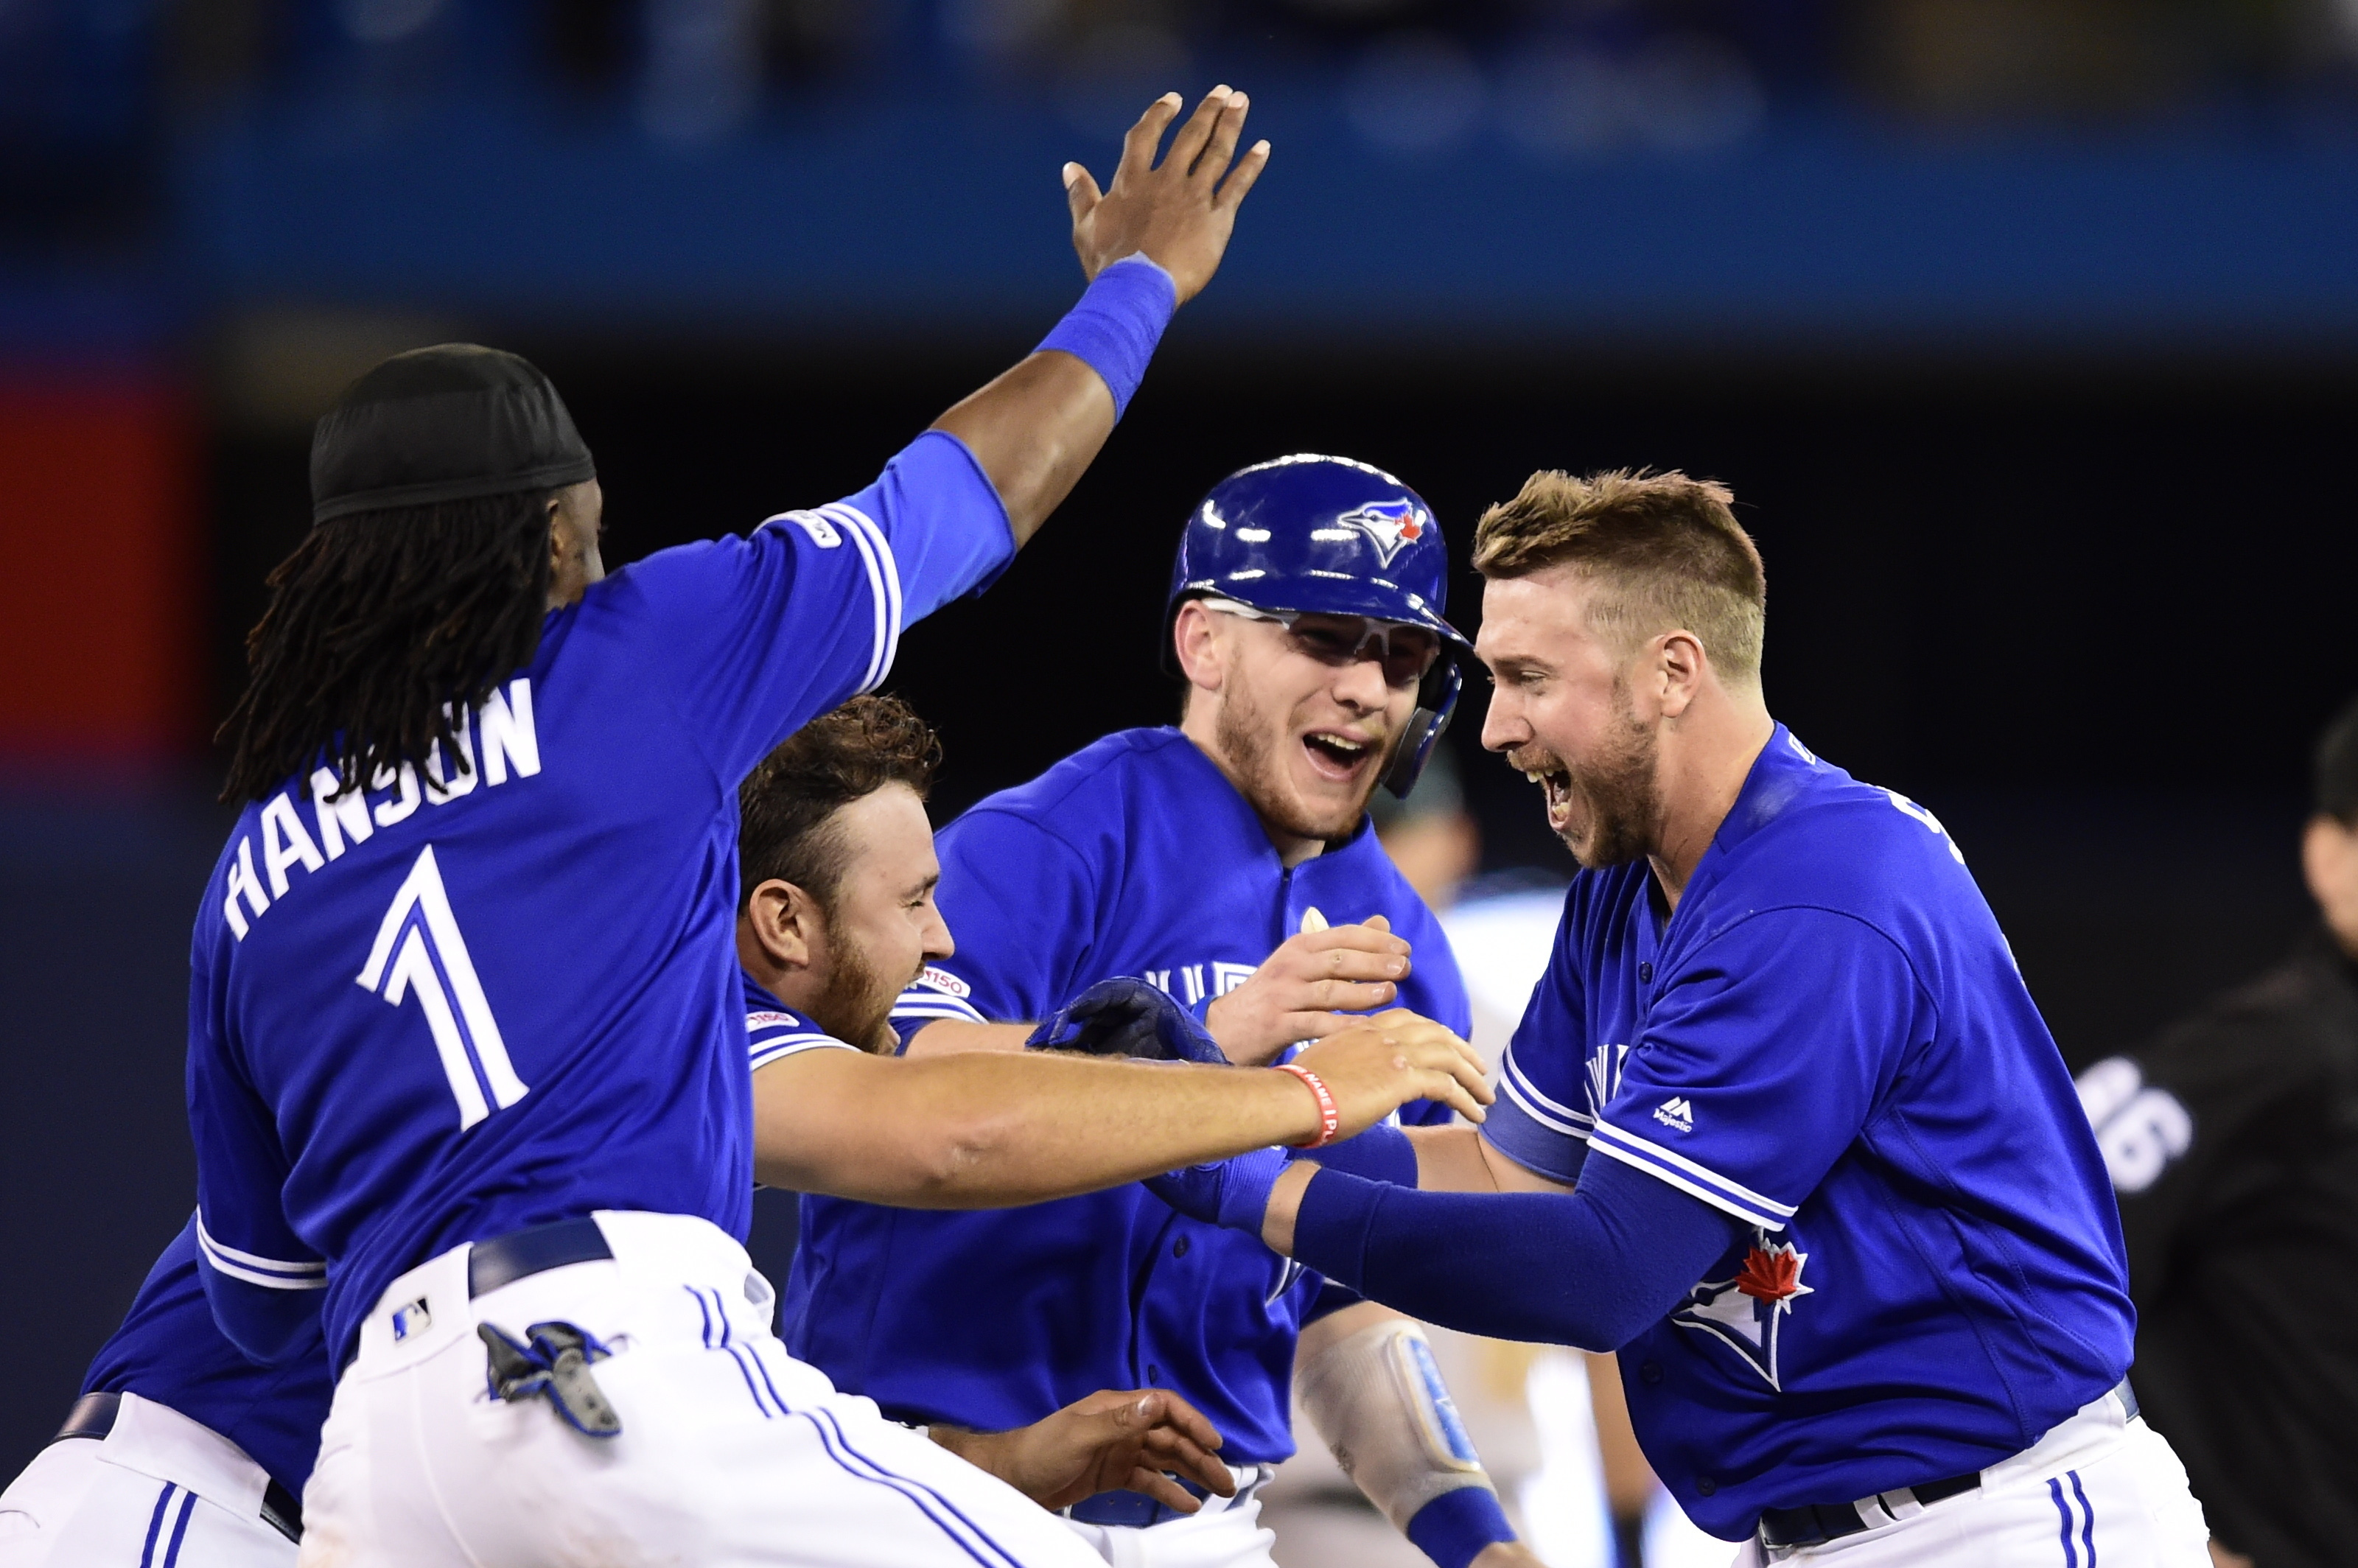 Drury's 3-run HR in 11th sparks Jays to season sweep of A's